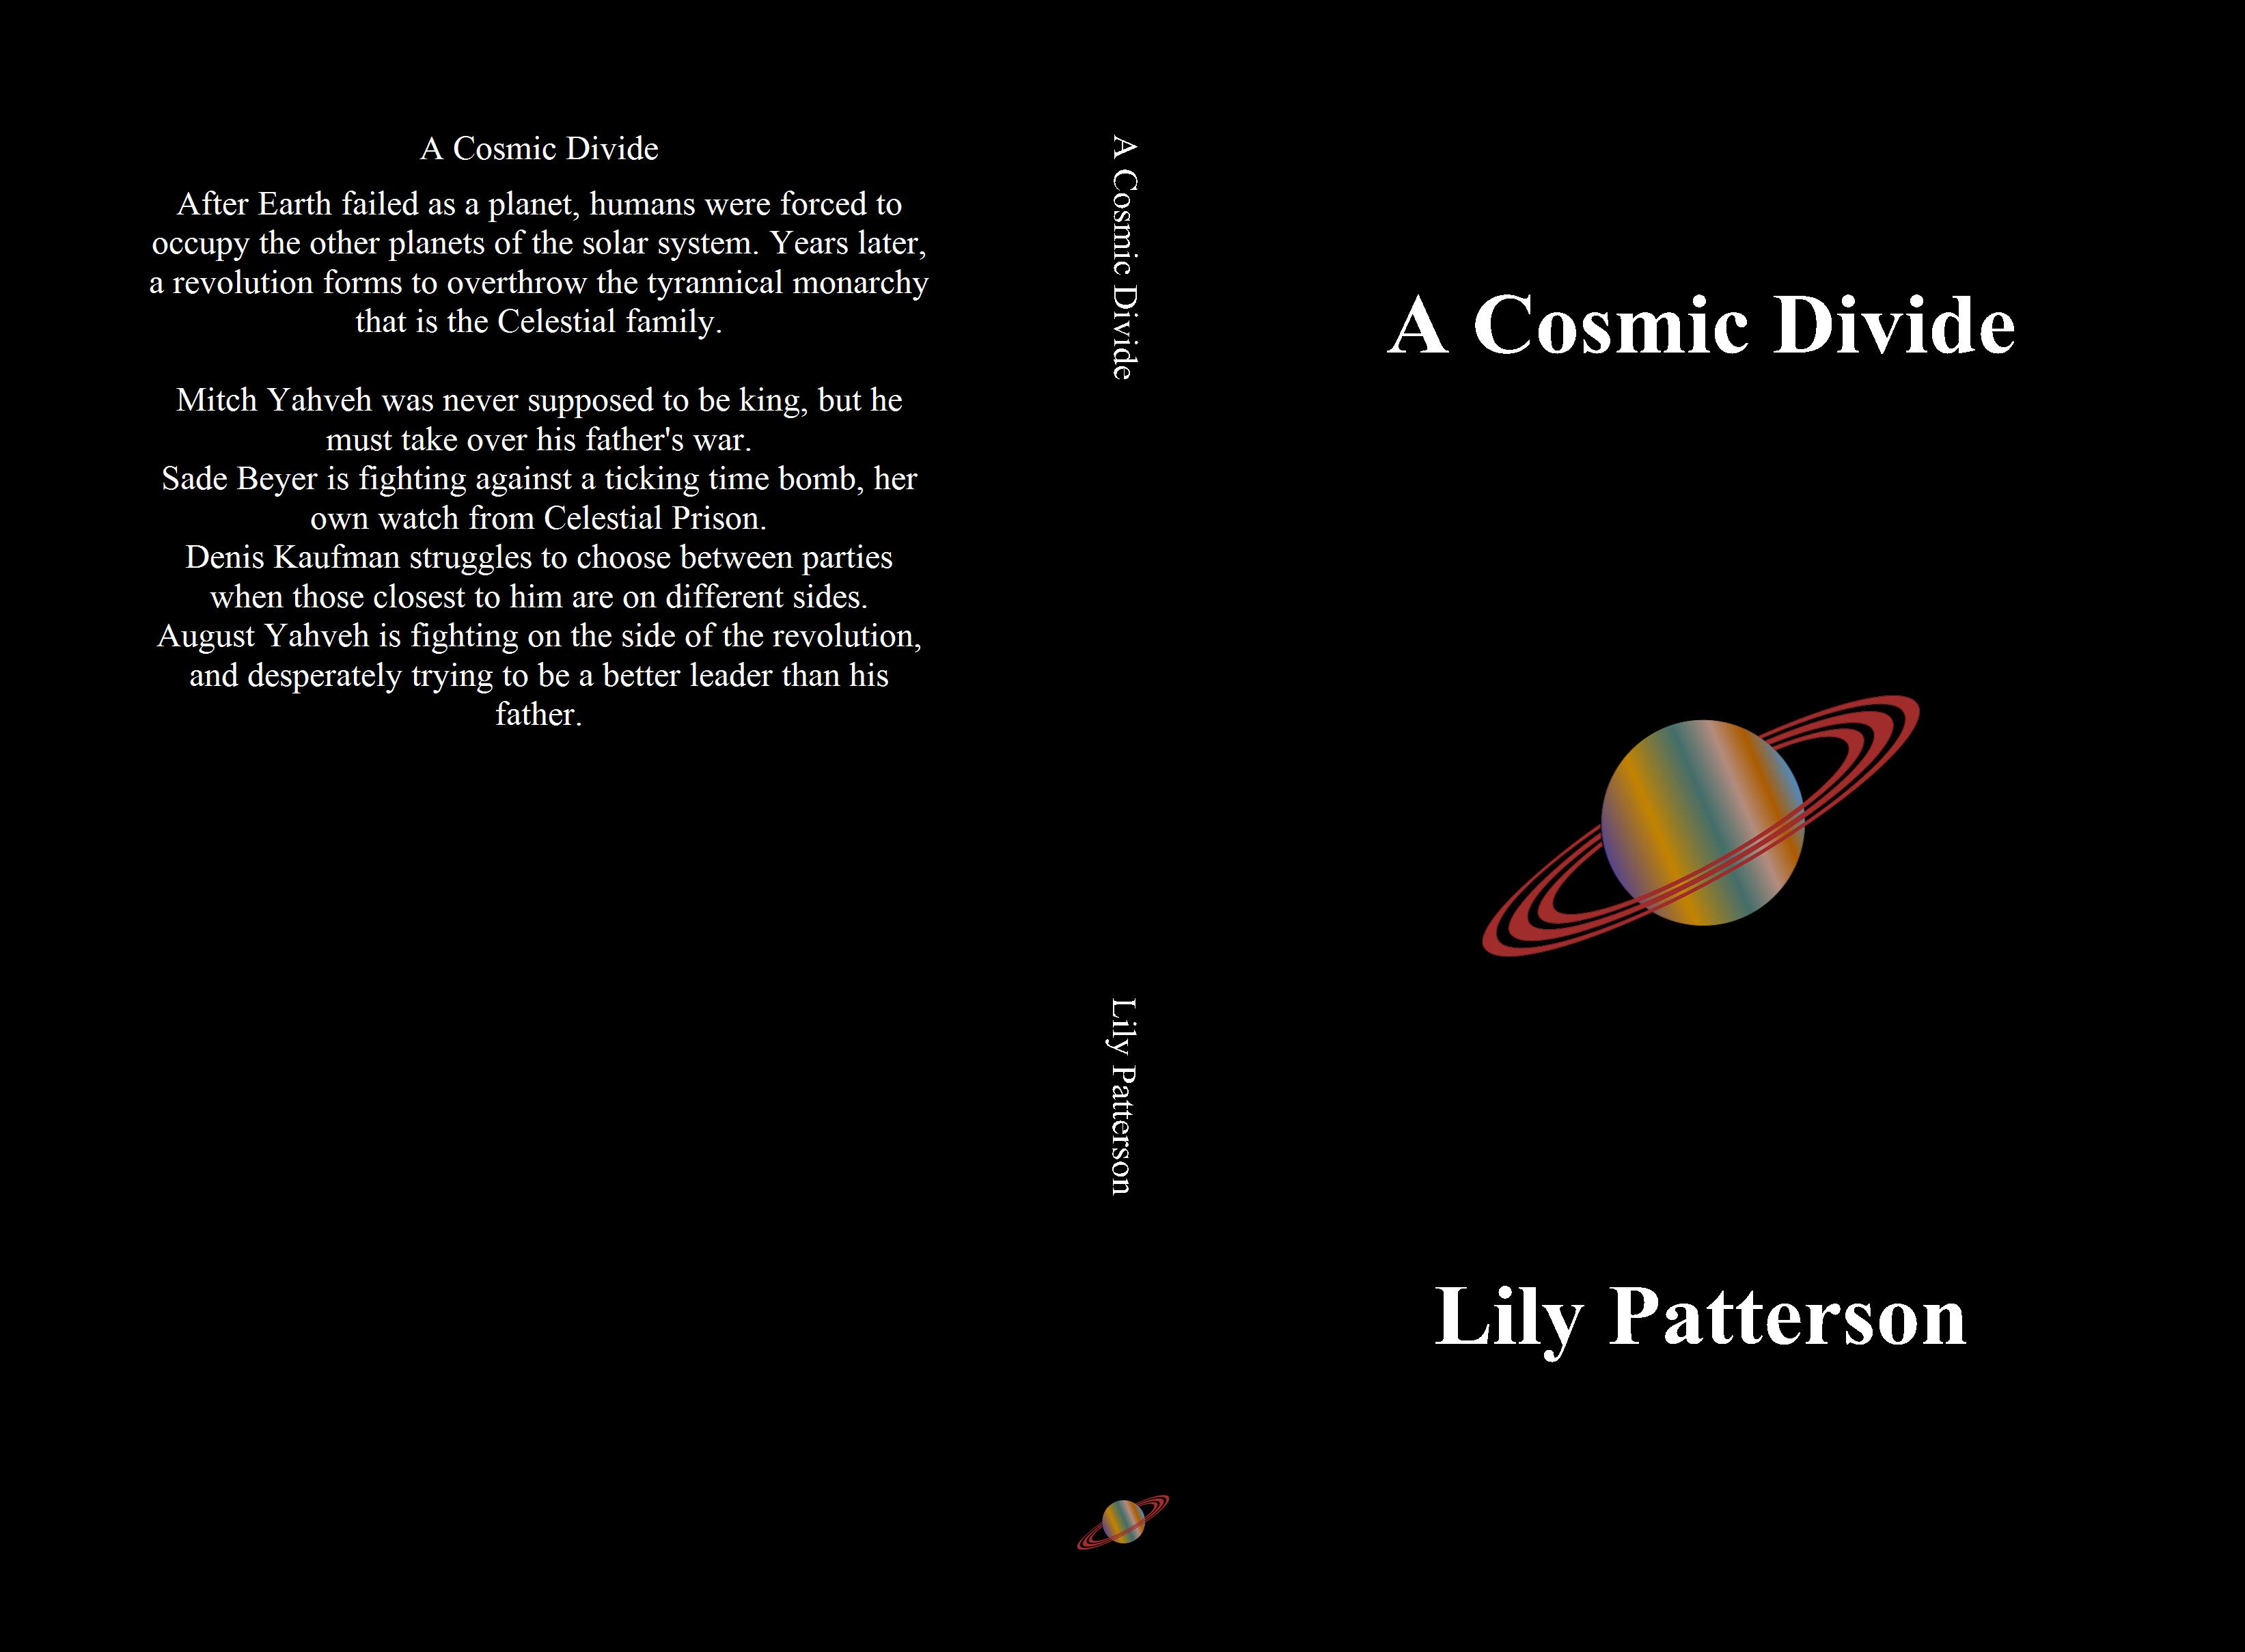 A Cosmic Divide cover image